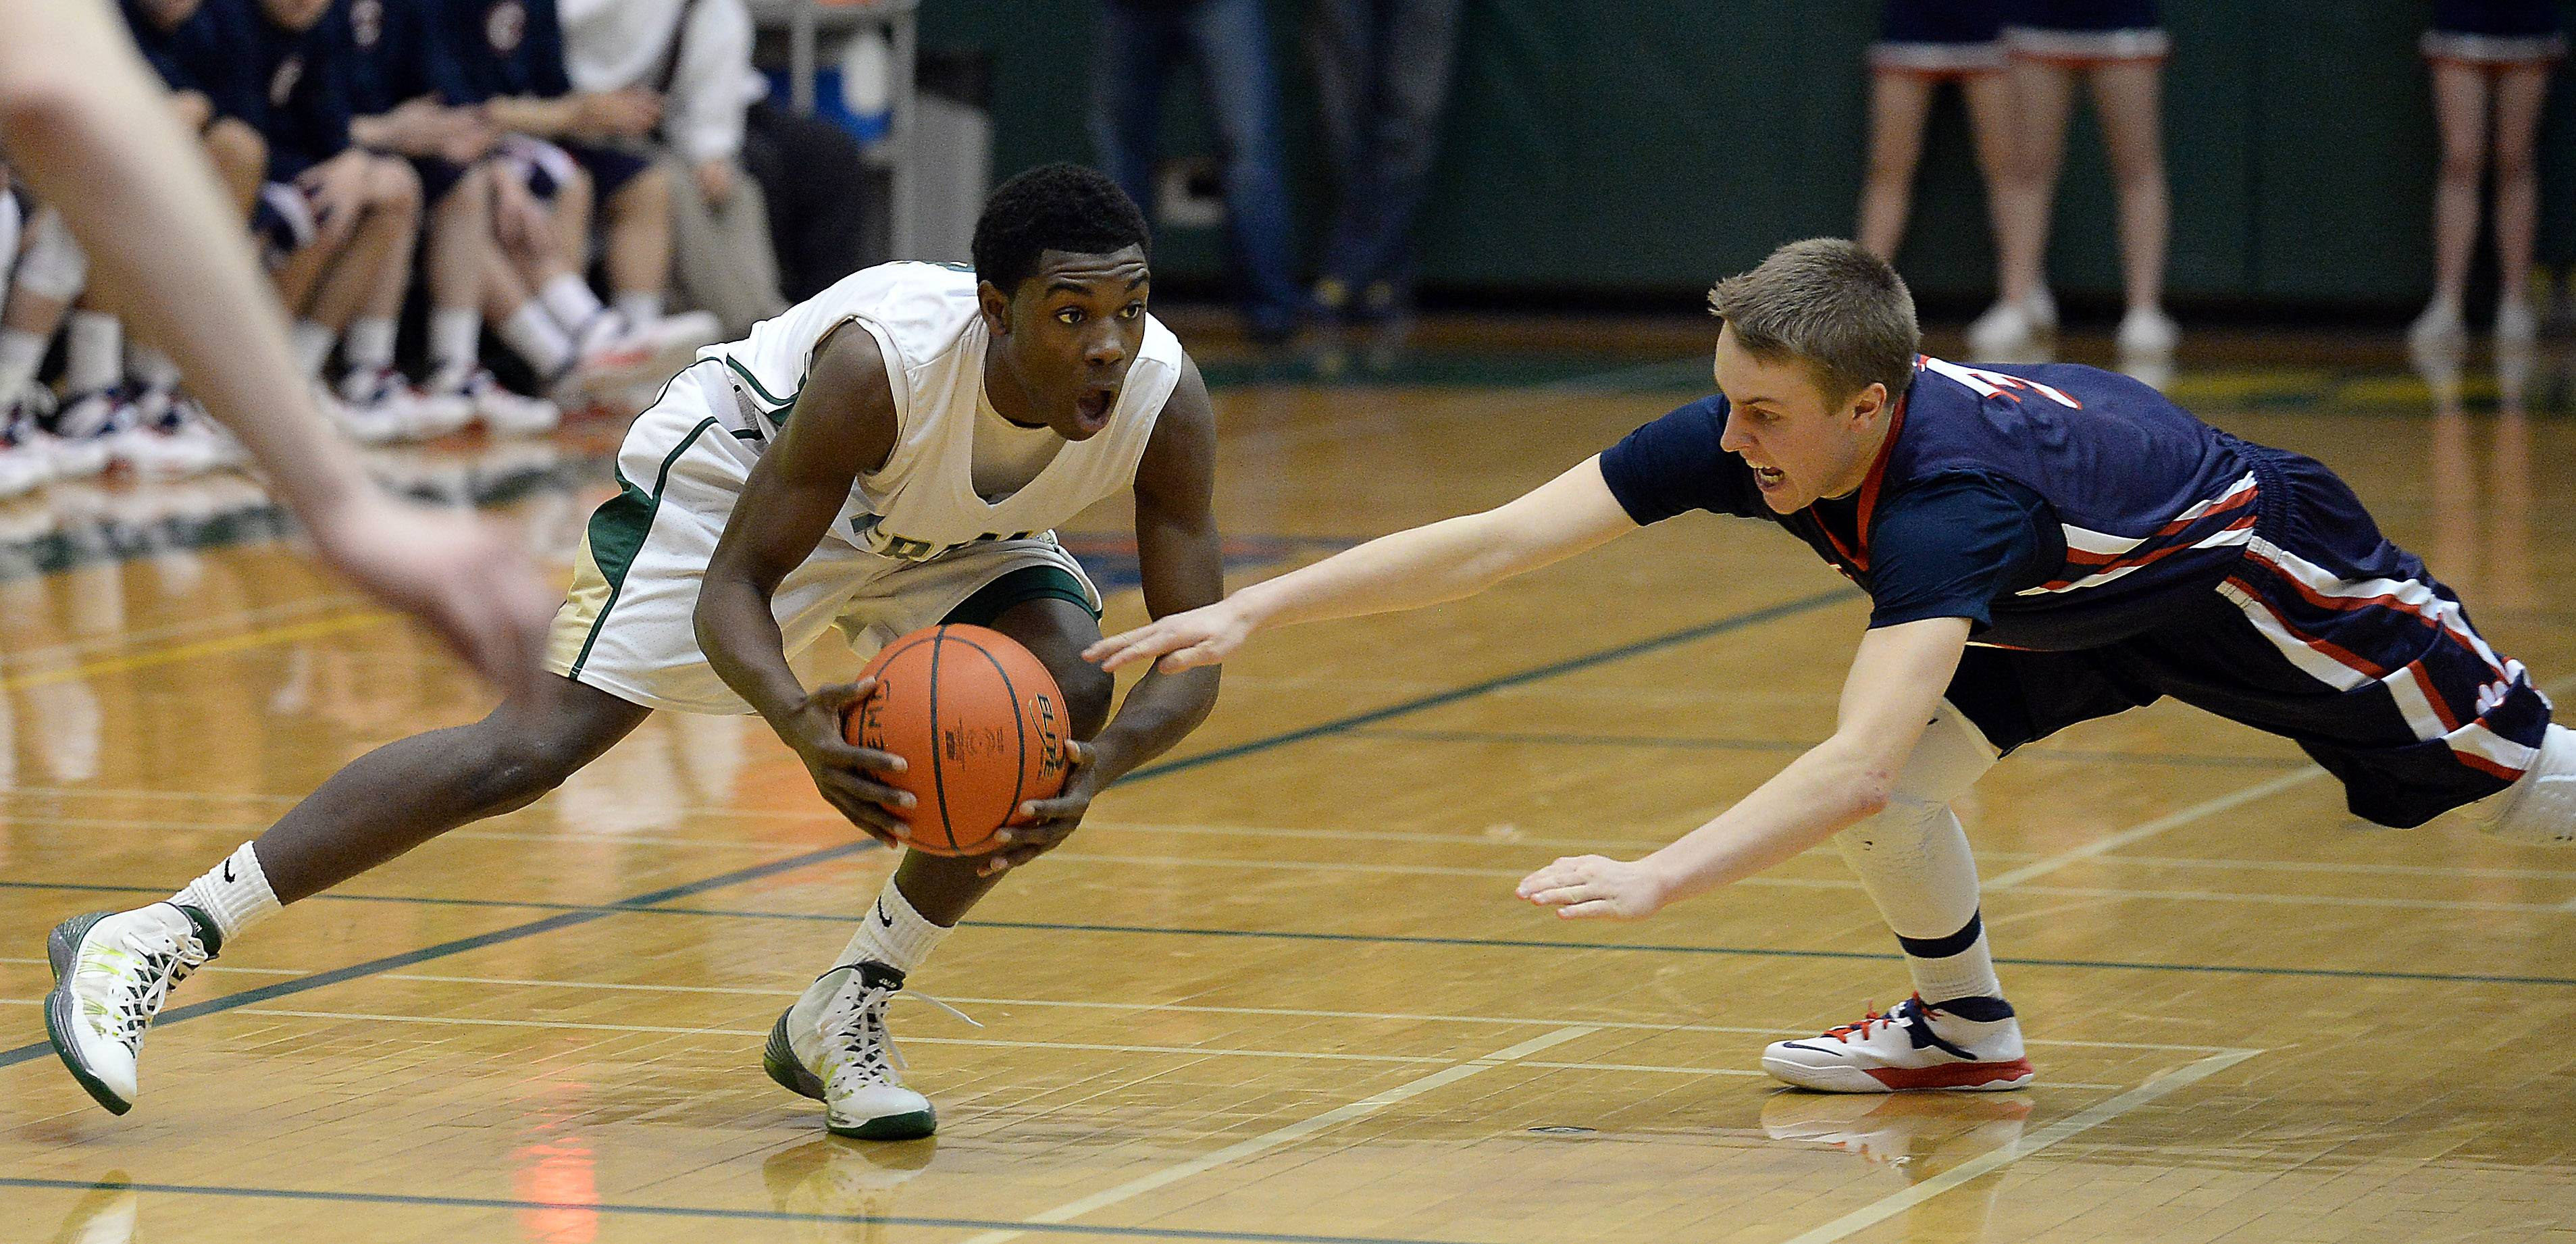 Fremd's Jalon Roundy (4) struggles for control of the ball as Conant's Kevin Copher (3) comes in and knocks it away at Fremd on Friday.